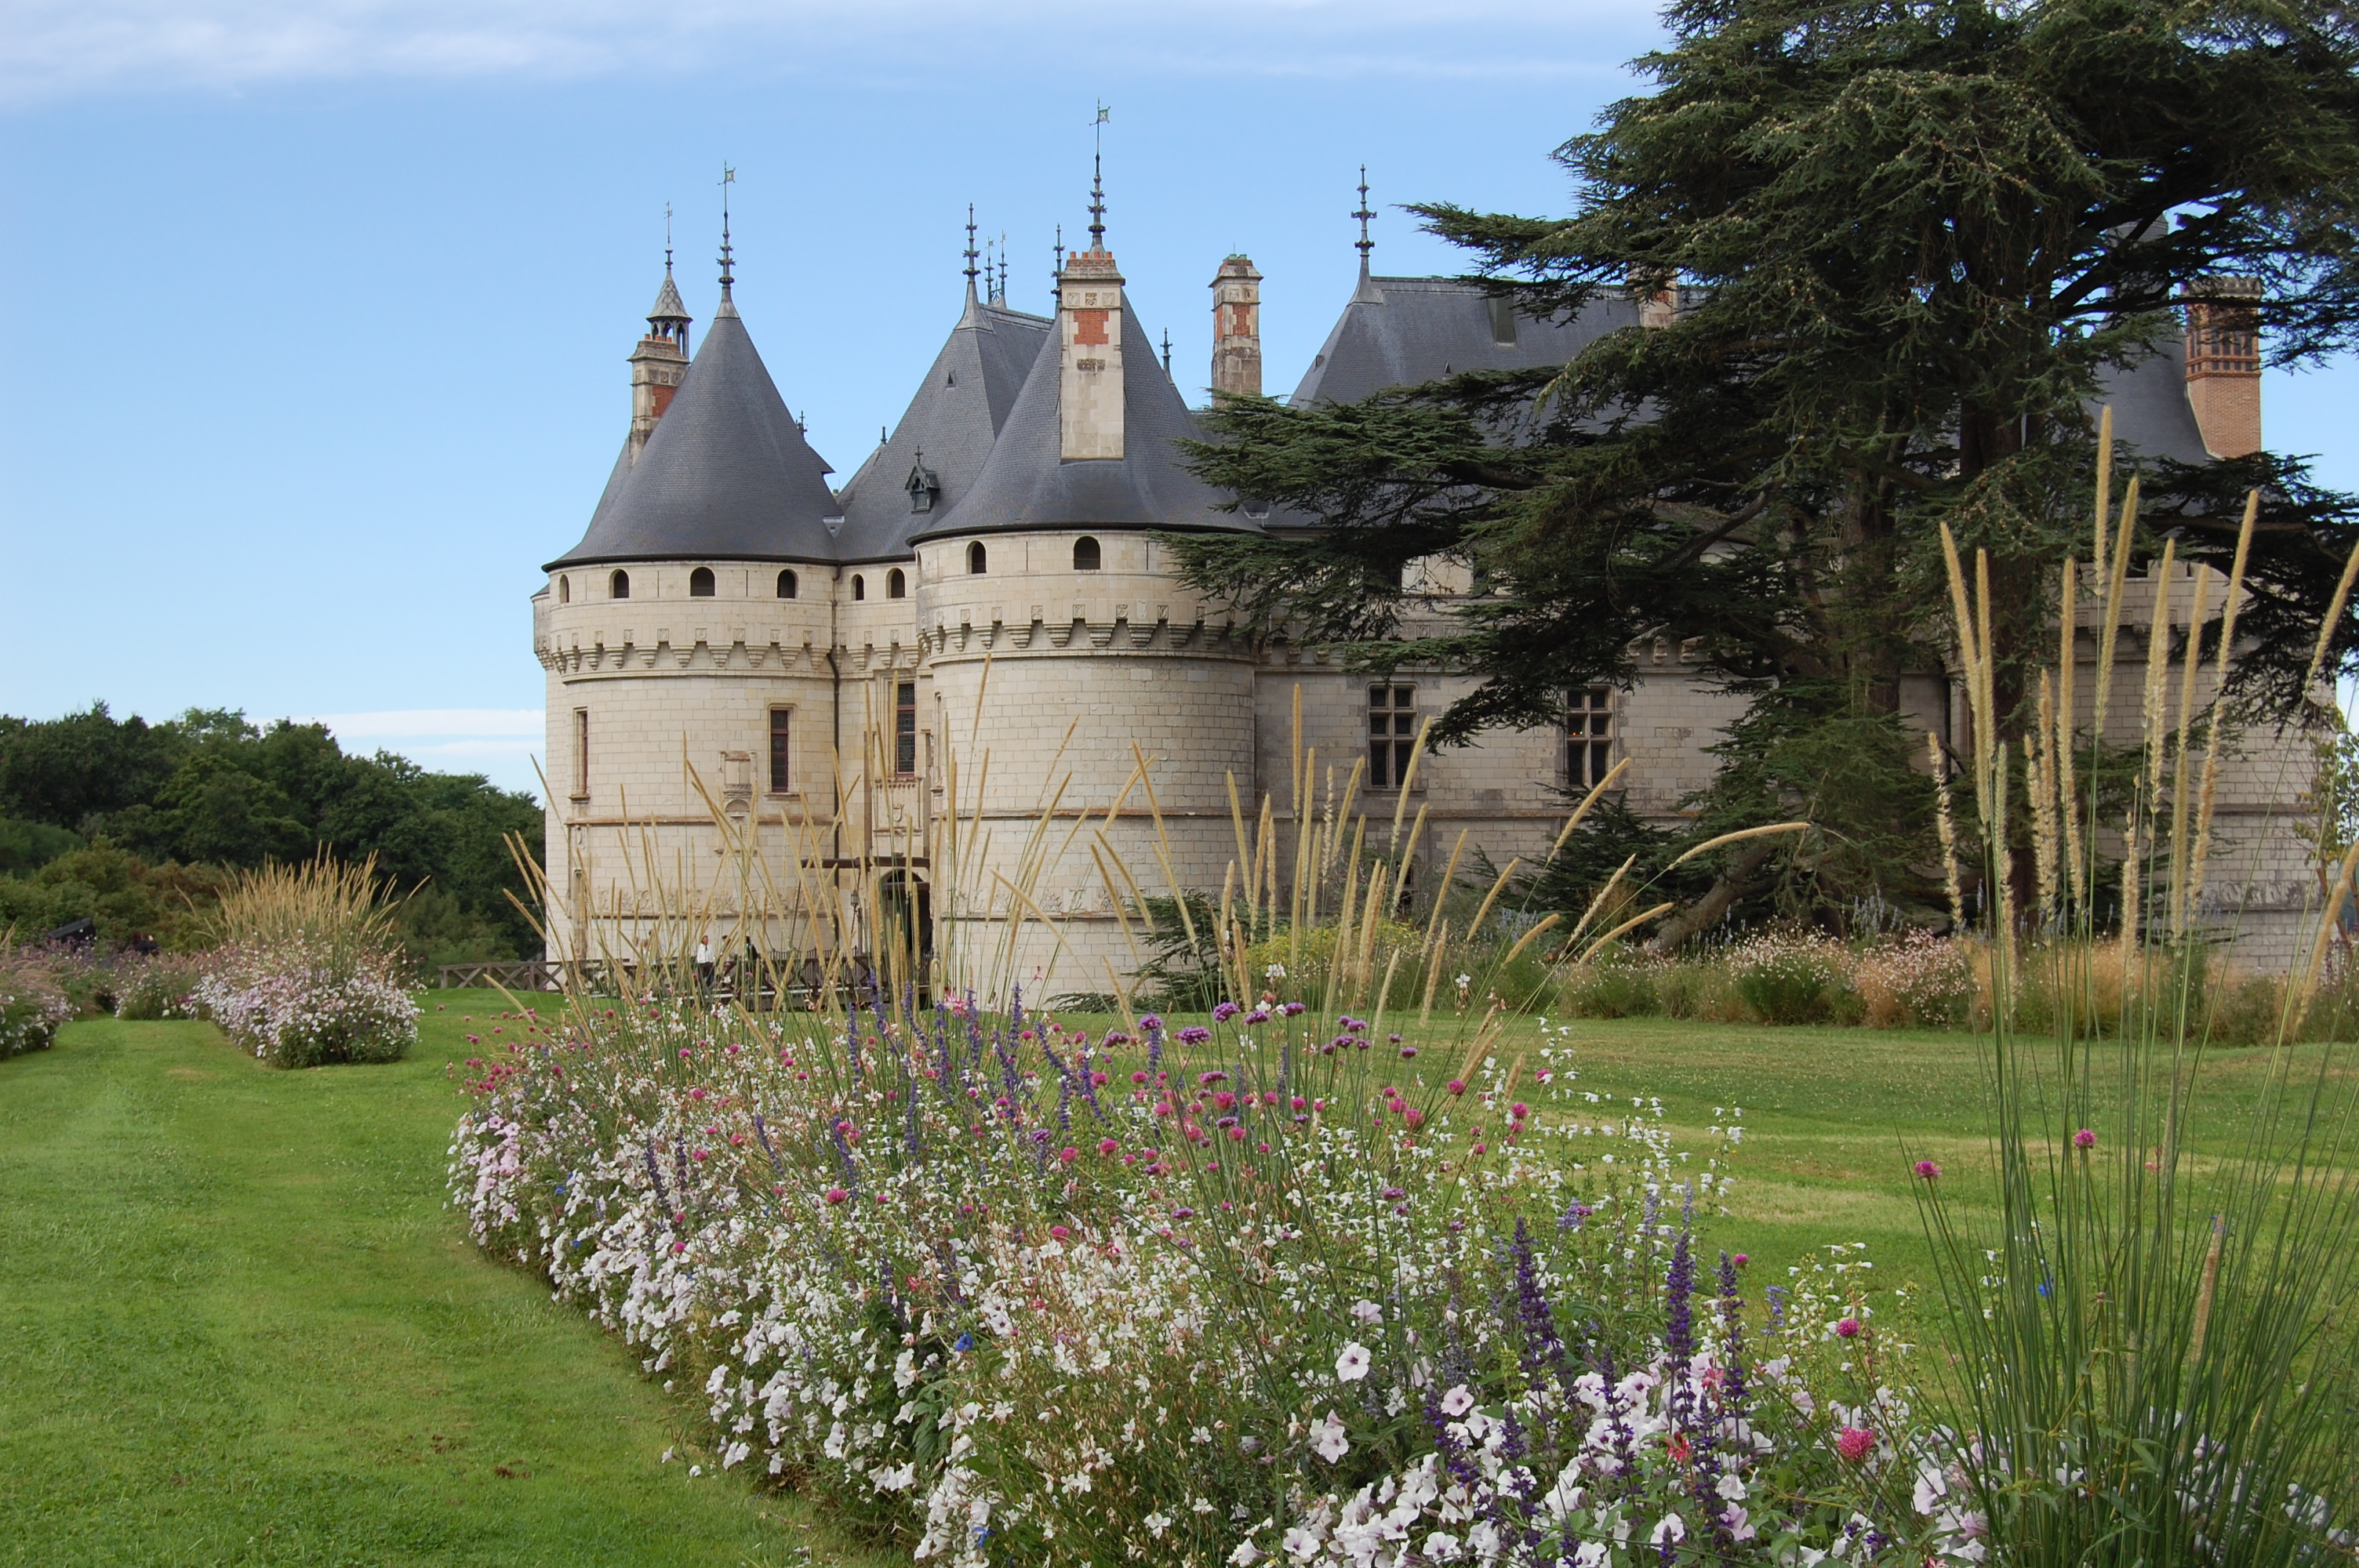 Populaire Ignoring 'No Entry' Signs at Chateau de Chaumont – gardeninacity CY42